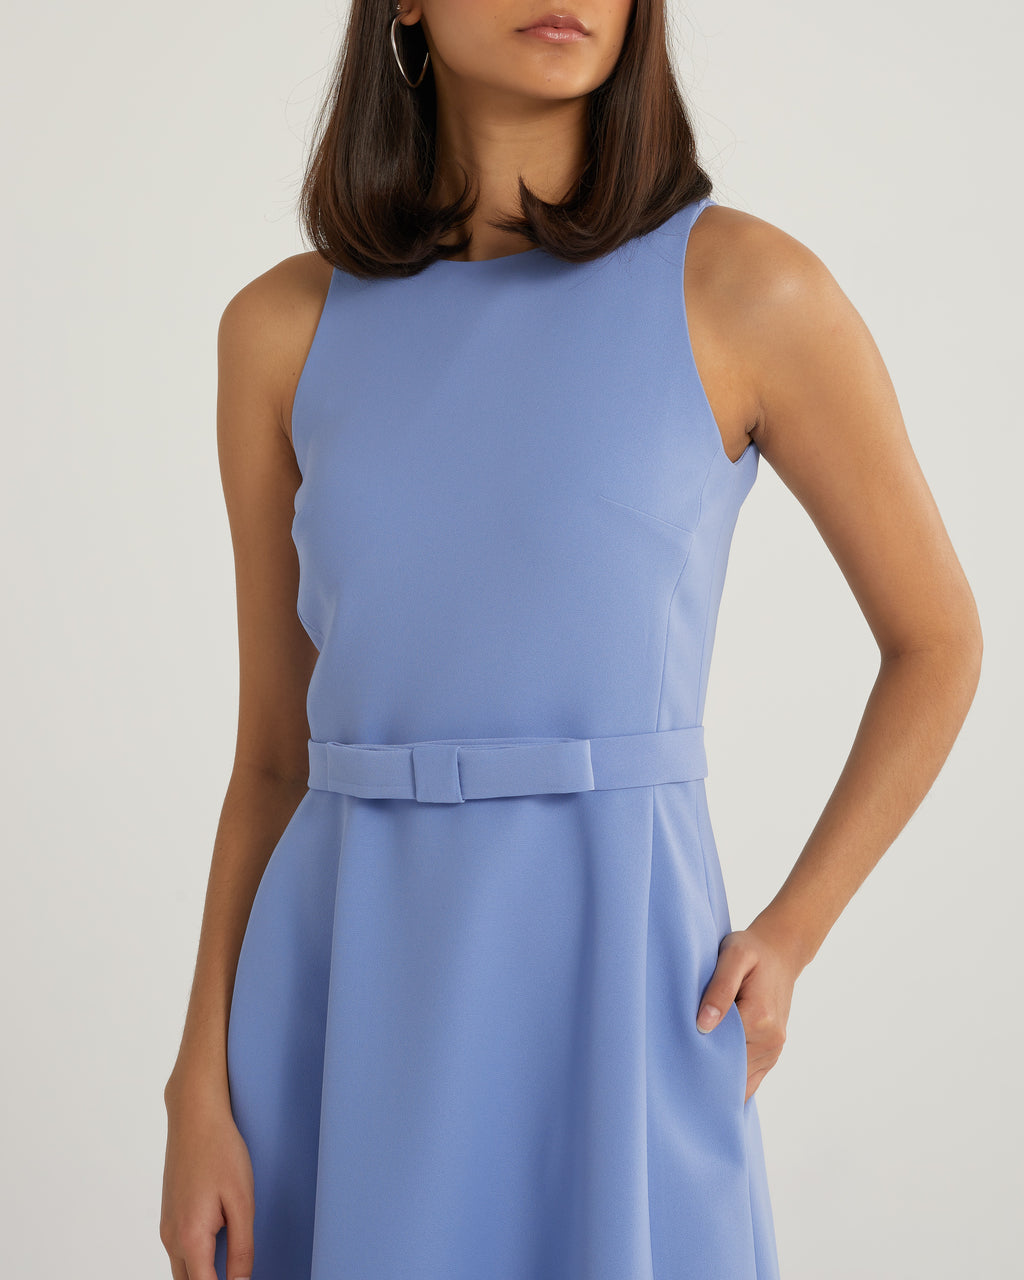 Shiraine american armhole blue work and cocktail dress